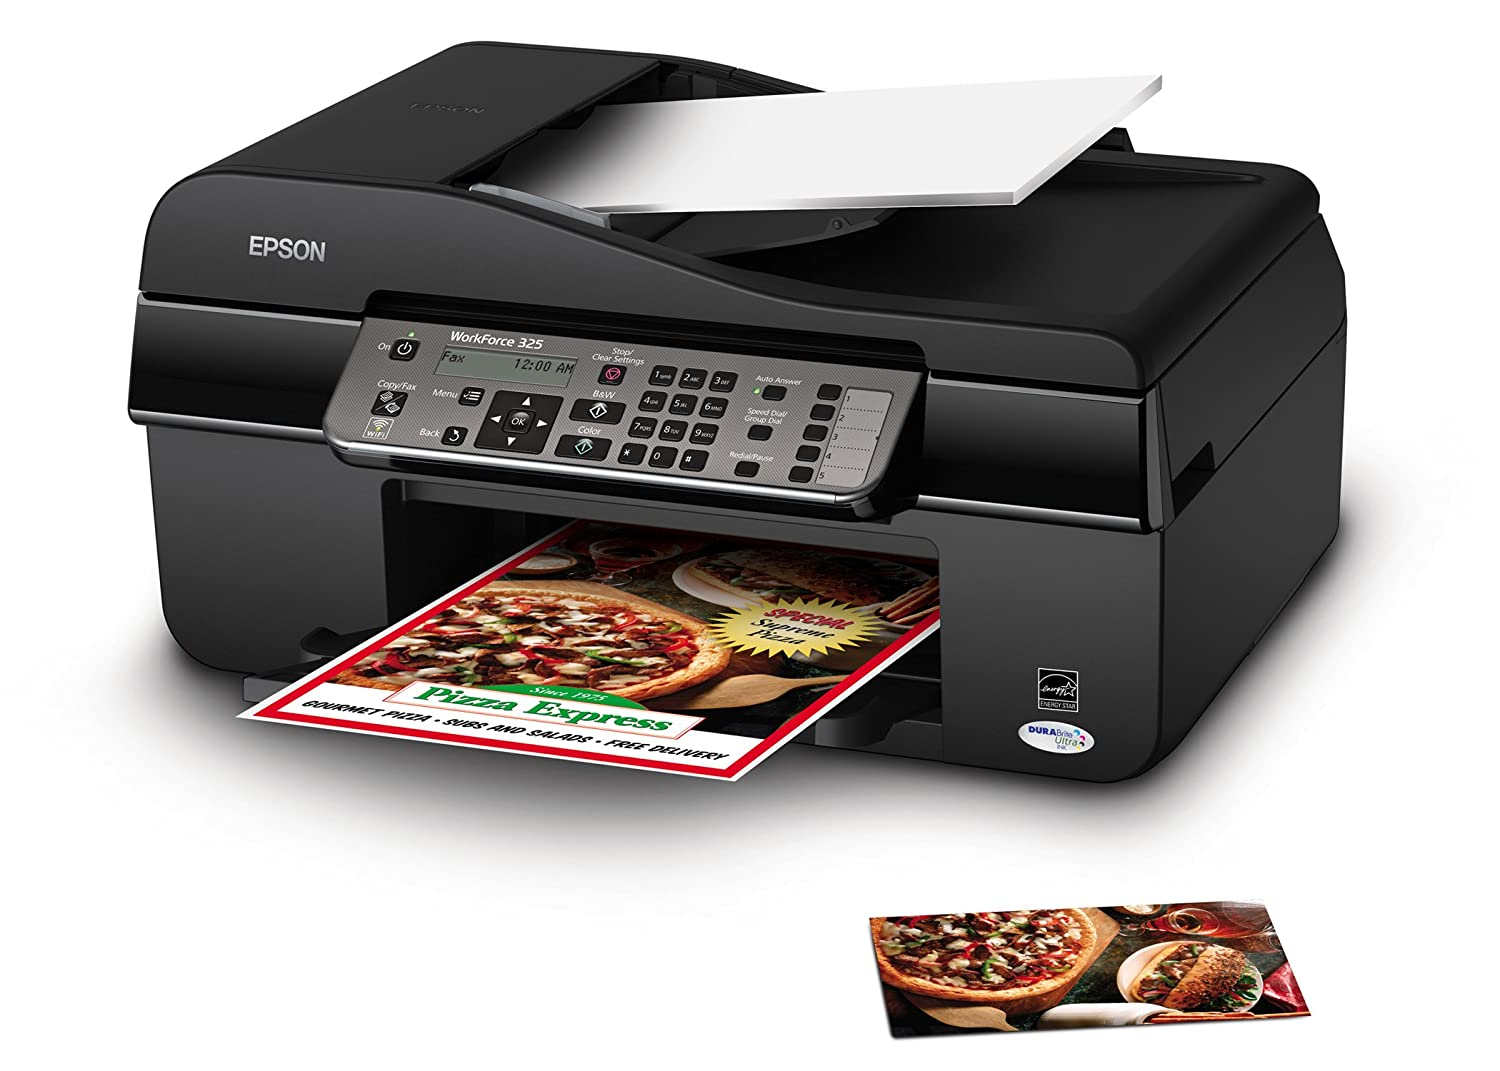 Amazon.com: Epson WorkForce 325 Color Inkjet All-in-One ...